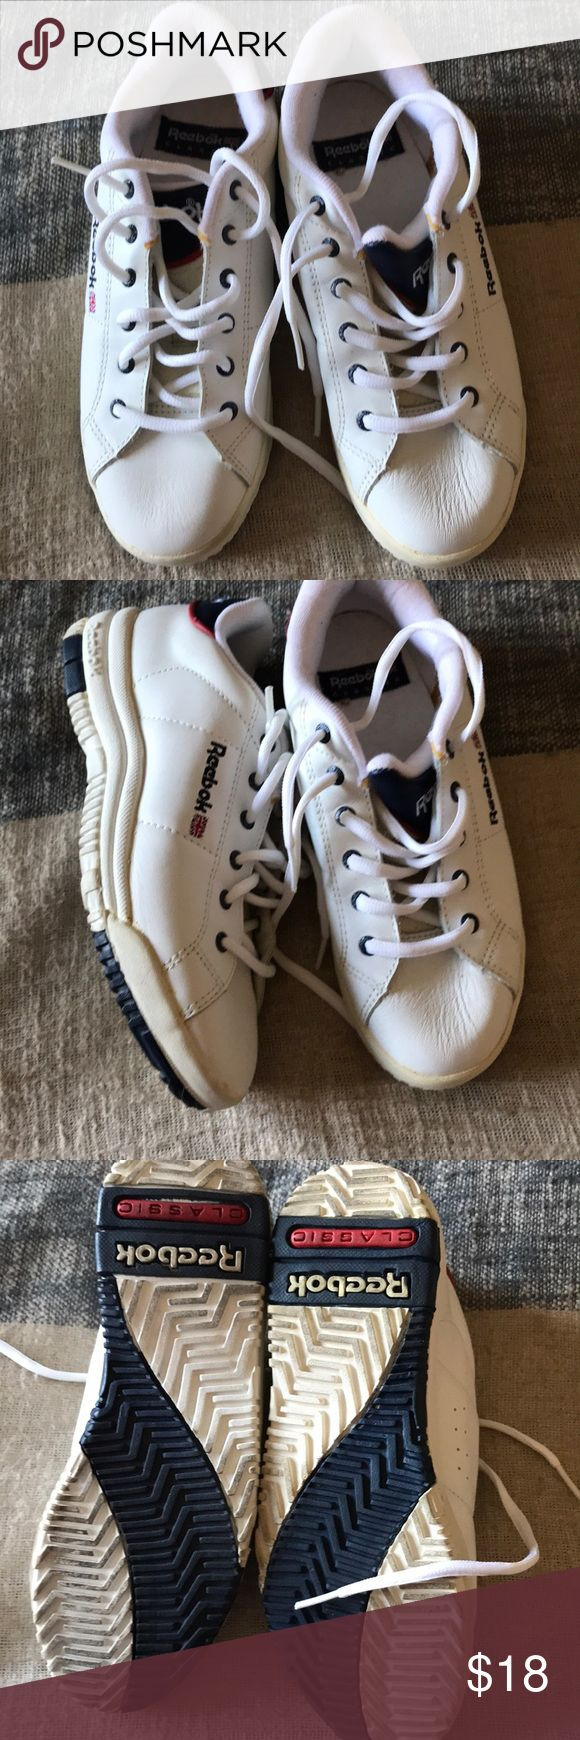 Like new REEBOK gym shoes Size 6 1/2 unisex REEBOK gym shoes. Never worn. Perfect soles. White shoe with navy tongue on shoe. Reebok symbol on side. Left tongue shoes done leather cracking underneath the laces (evident in last picture) Reebok Shoes Sneakers